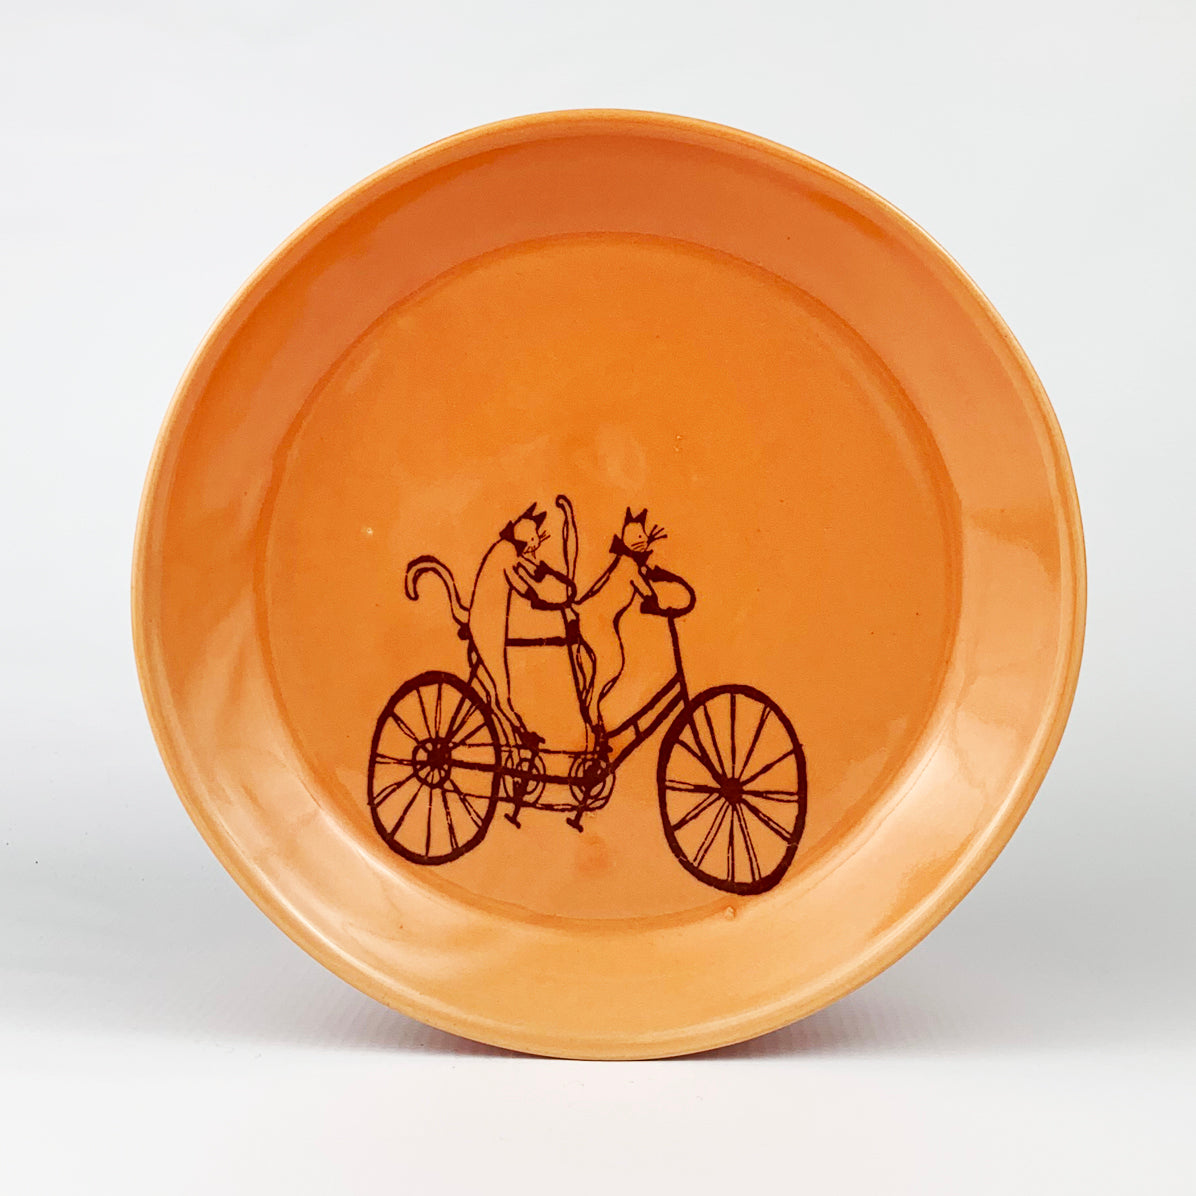 Small Plate - Illustrated Cat Riding a Bike